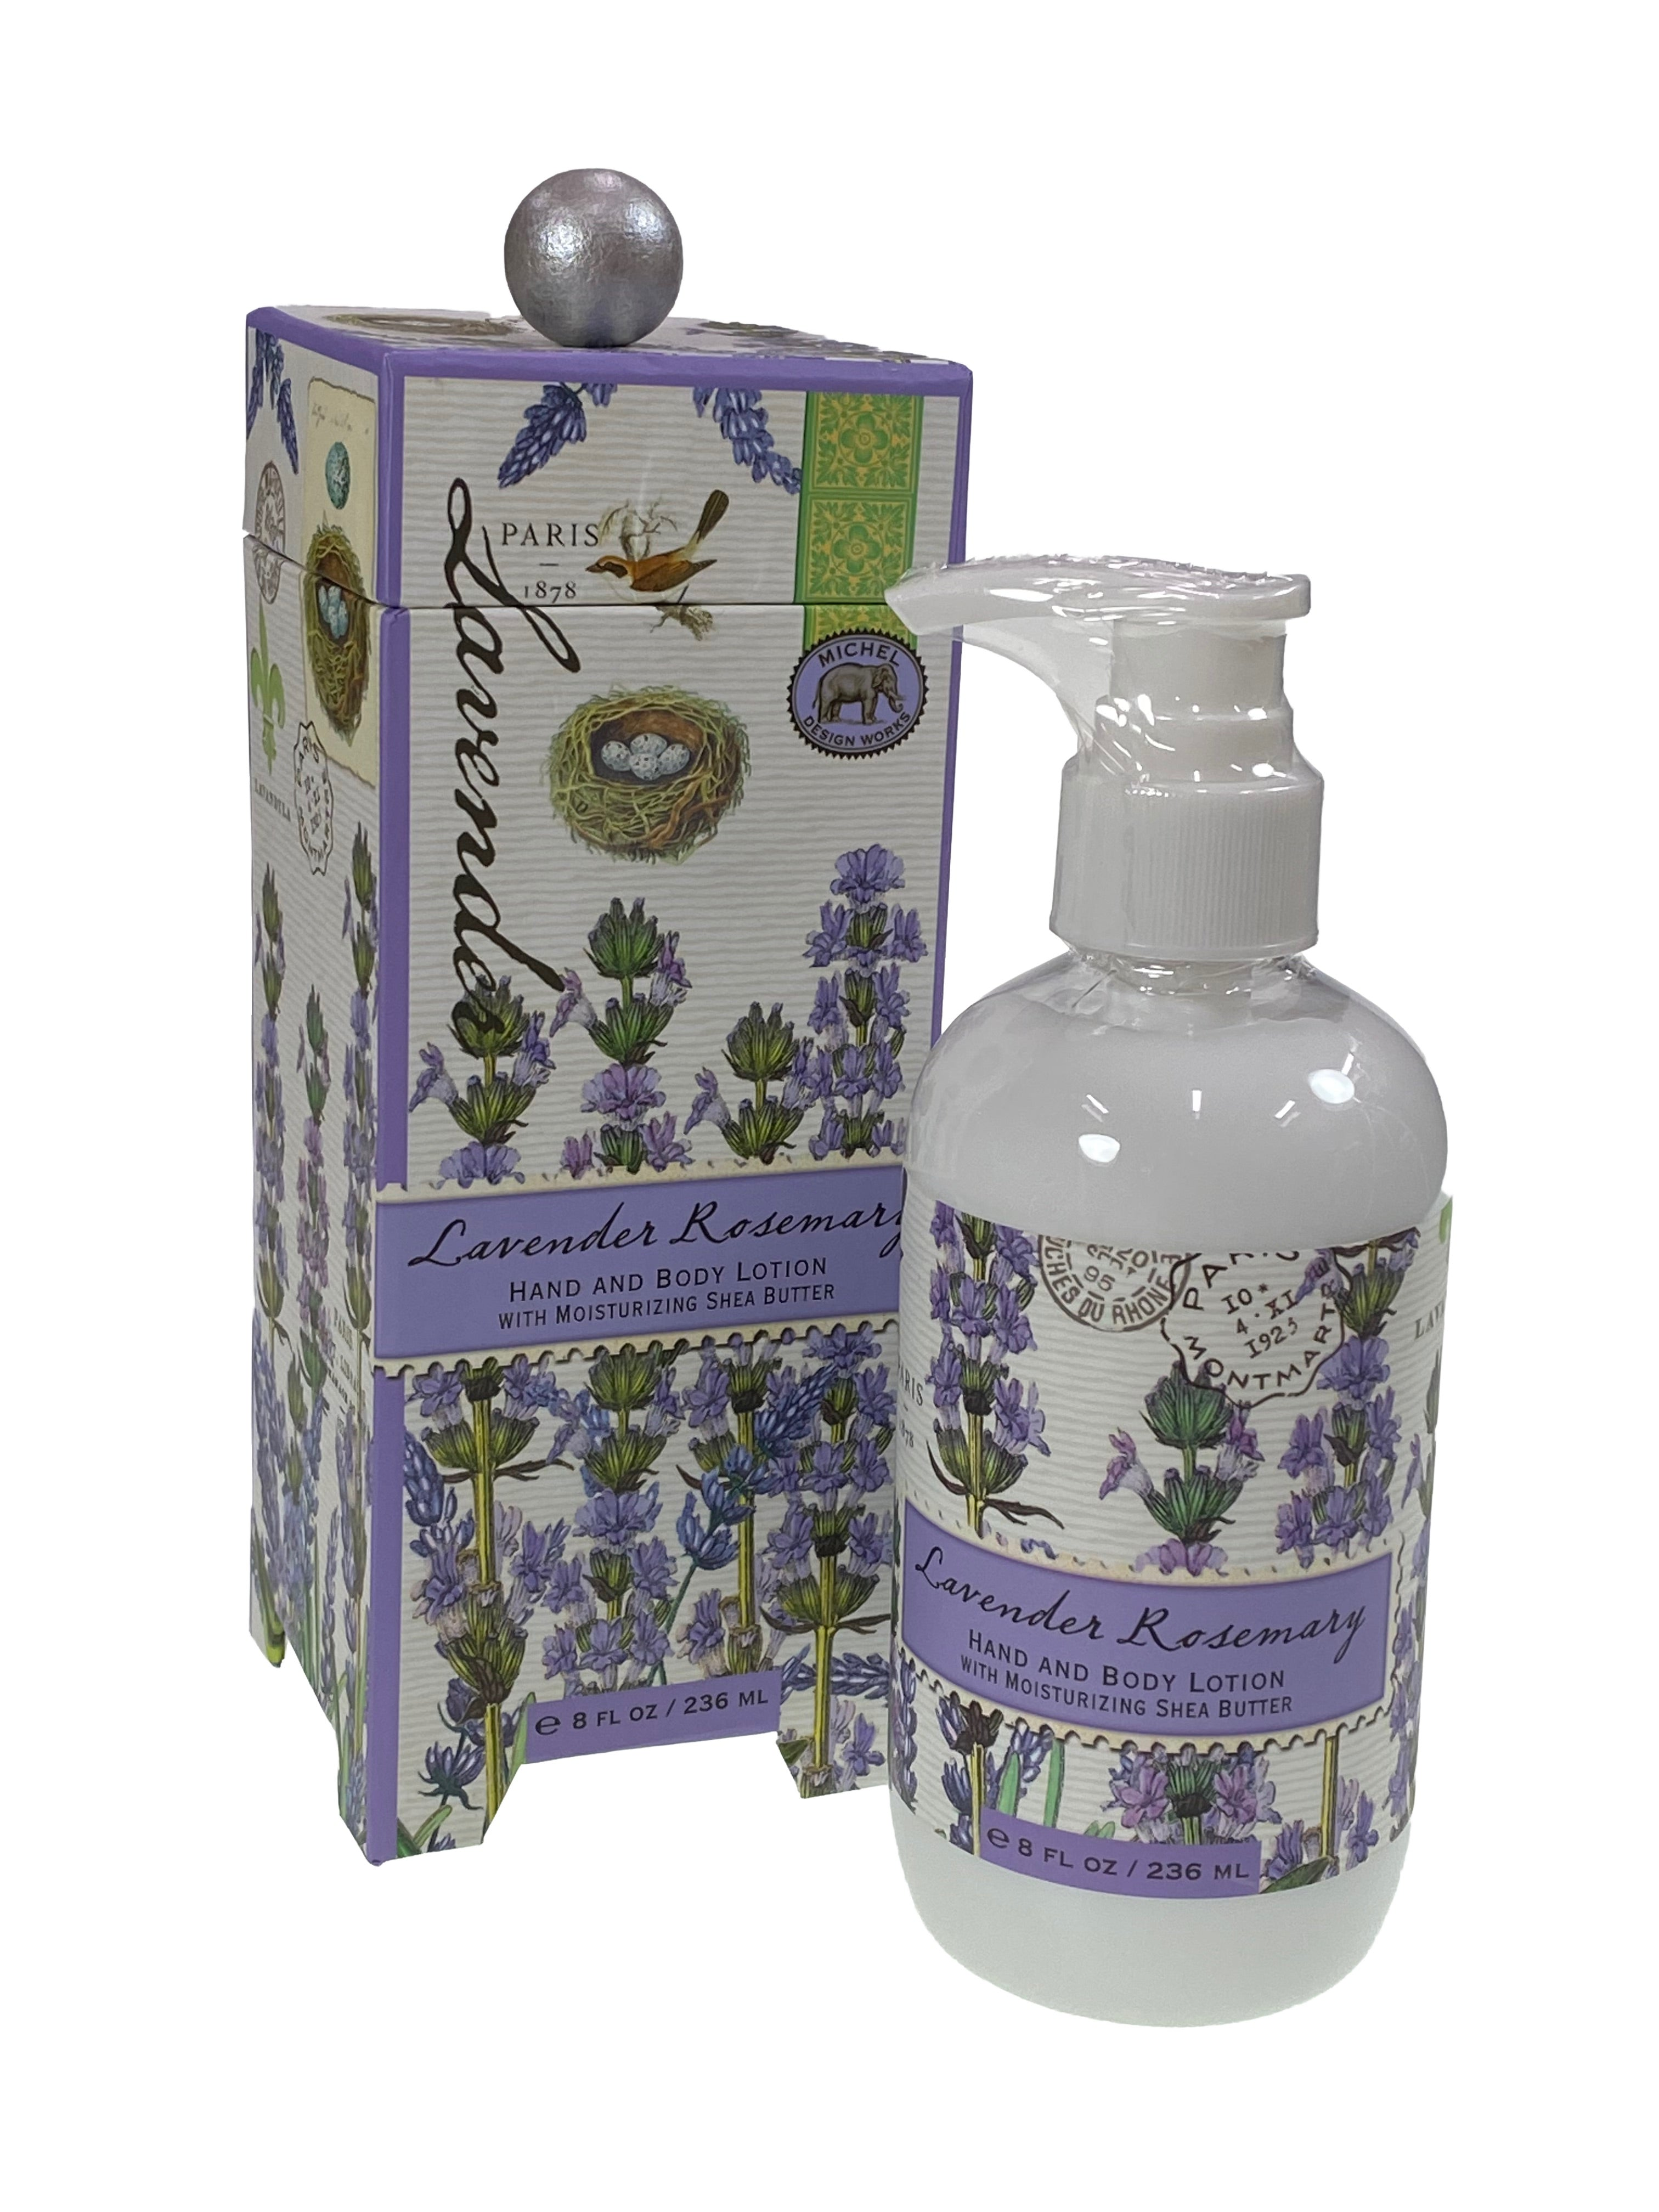 Lavender Rosemary Hand and Body Lotion with Shea Butter